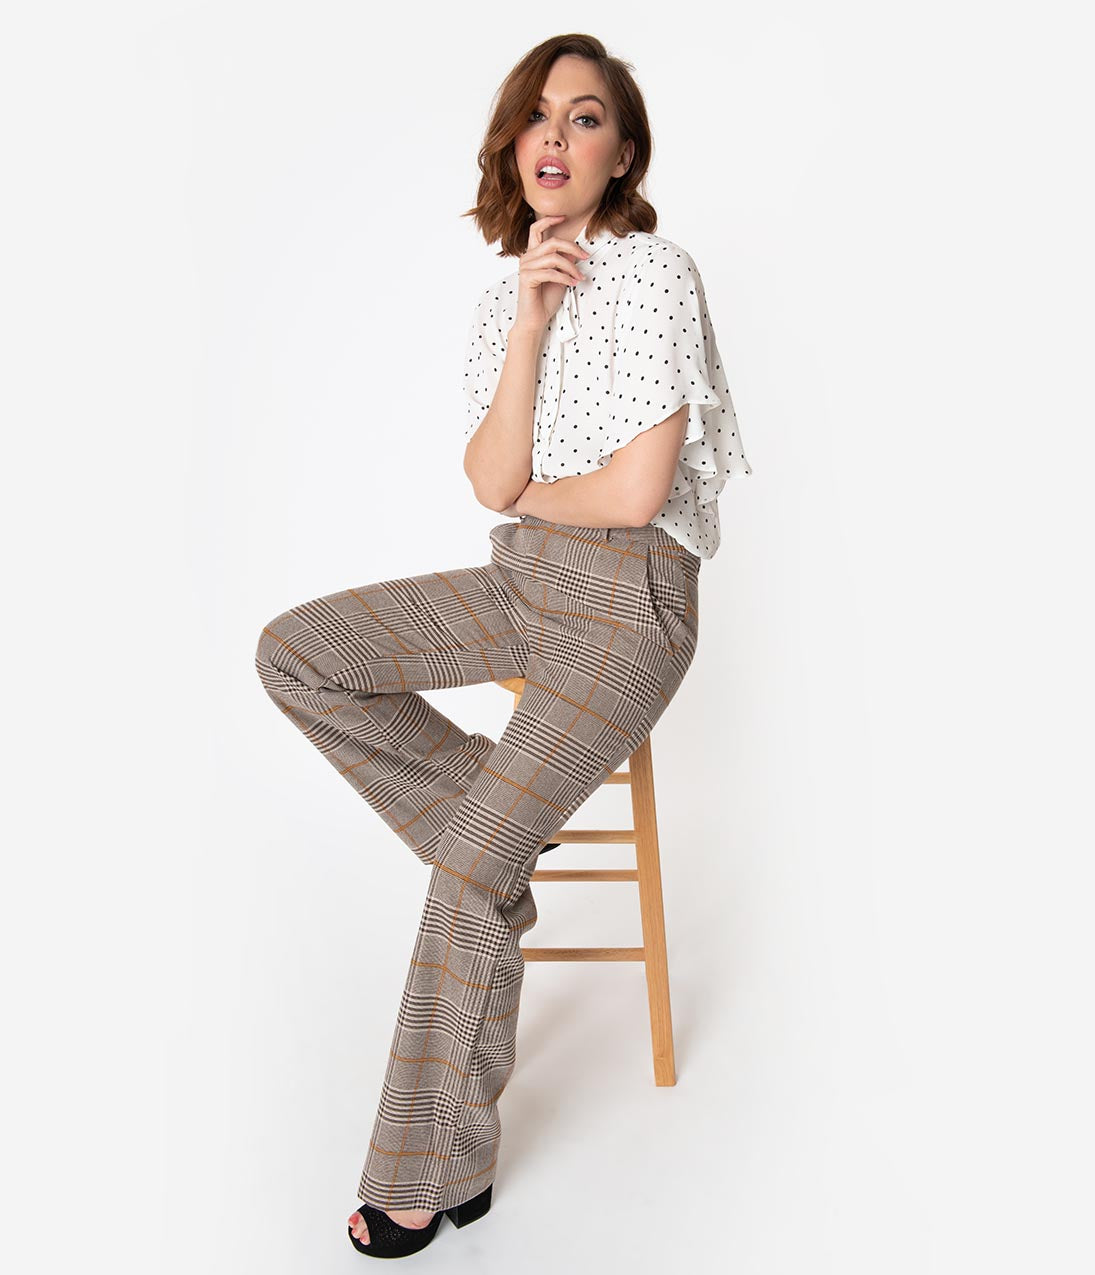 Vintage High Waisted Trousers, Sailor Pants, Jeans 1940S Style Brown Plaid Woven Shelly Pants $48.00 AT vintagedancer.com